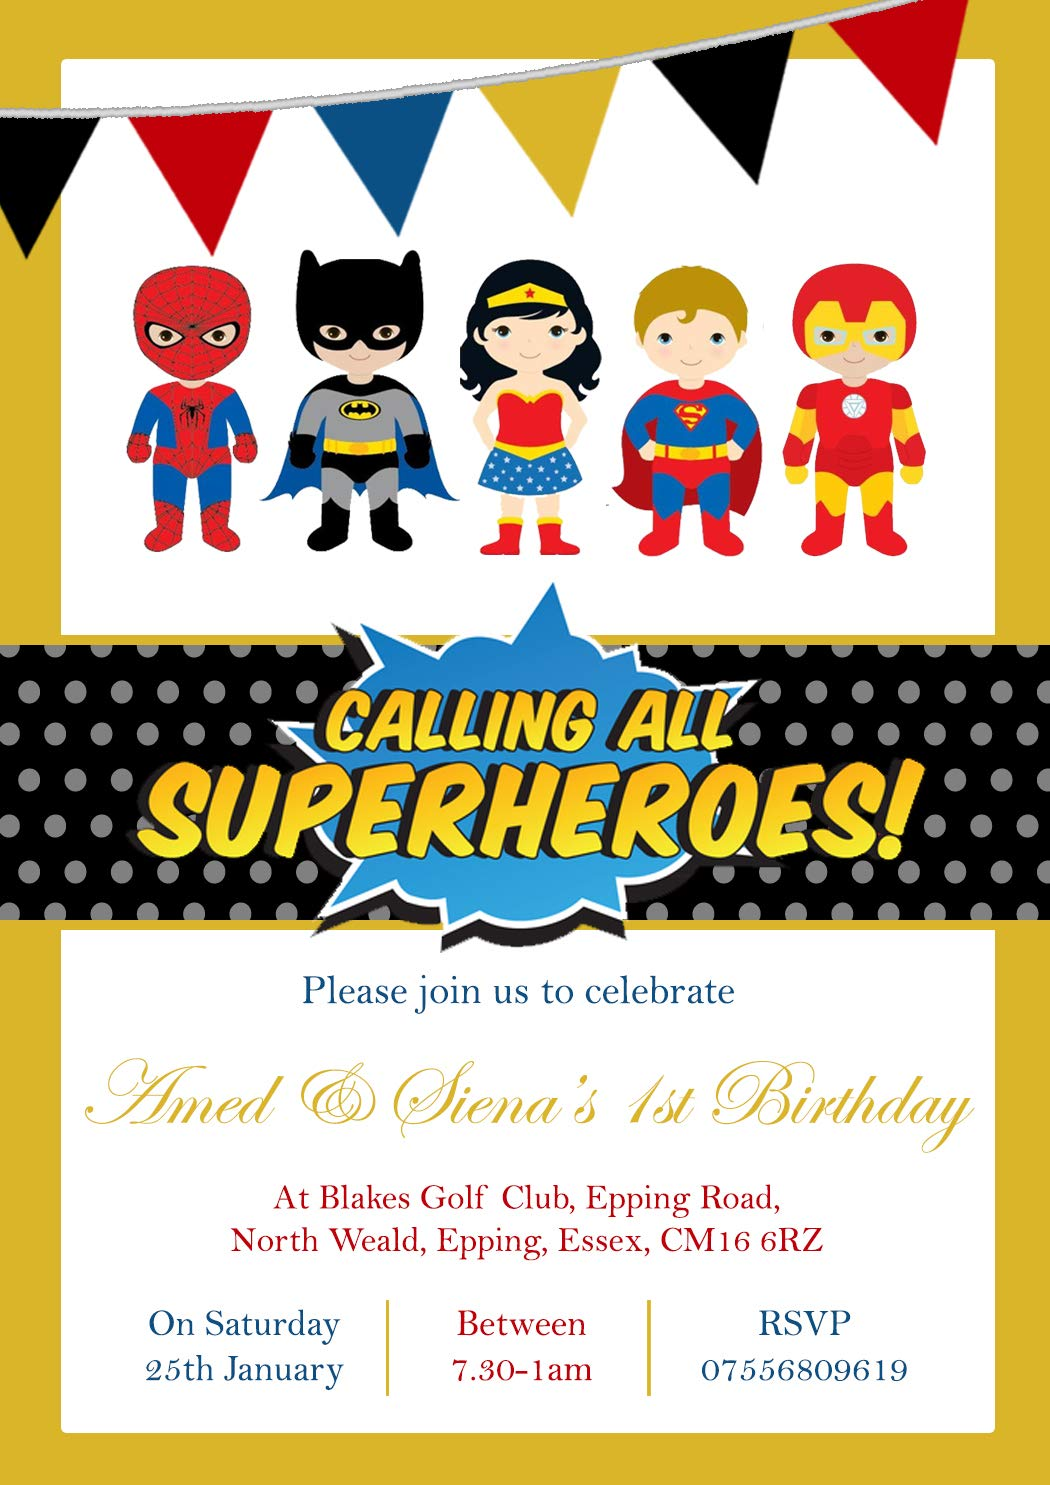 POW Personalised Calling All Superheros Childrens Birthday Invitations Printed Invites Boy Girl Joint Party Twins Unisex Photo Card Superhero